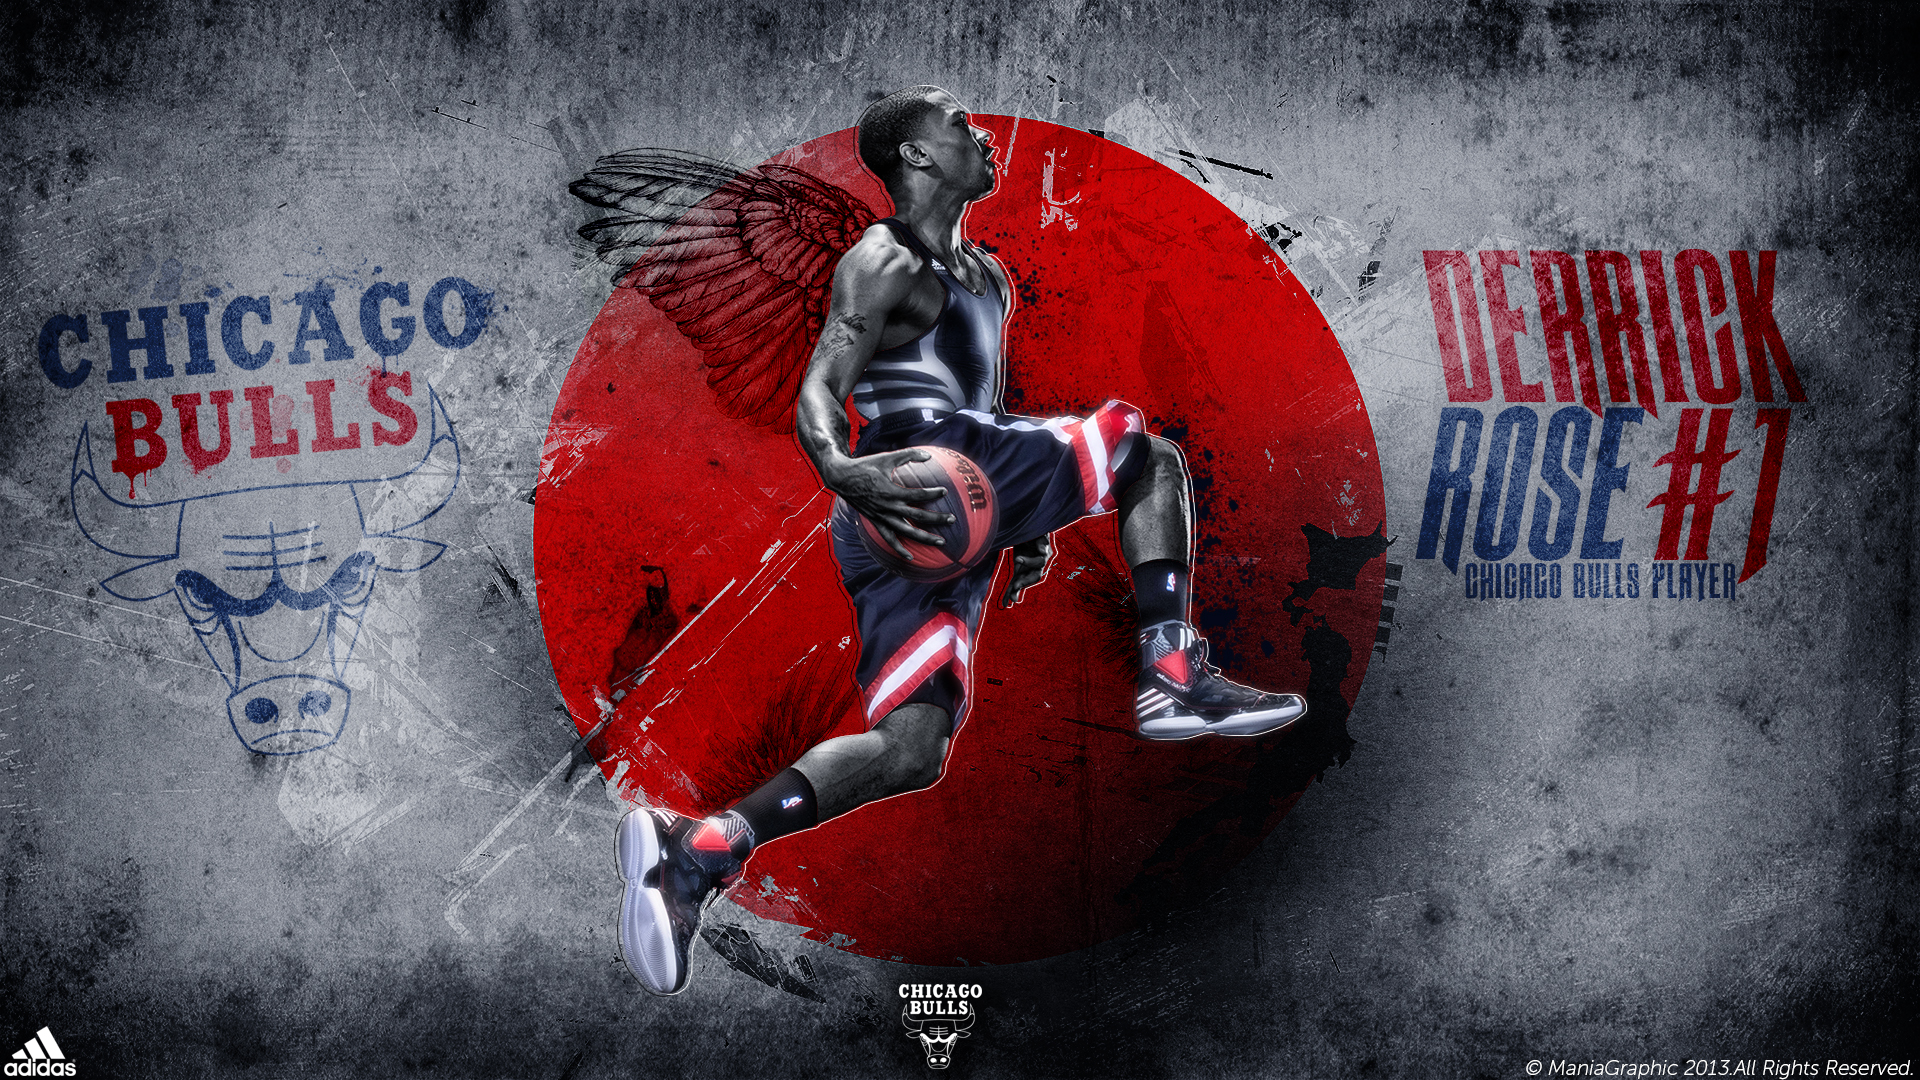 wallpaper other 2013 2015 maniagraphic derrick rose wallpaper 1920x1080